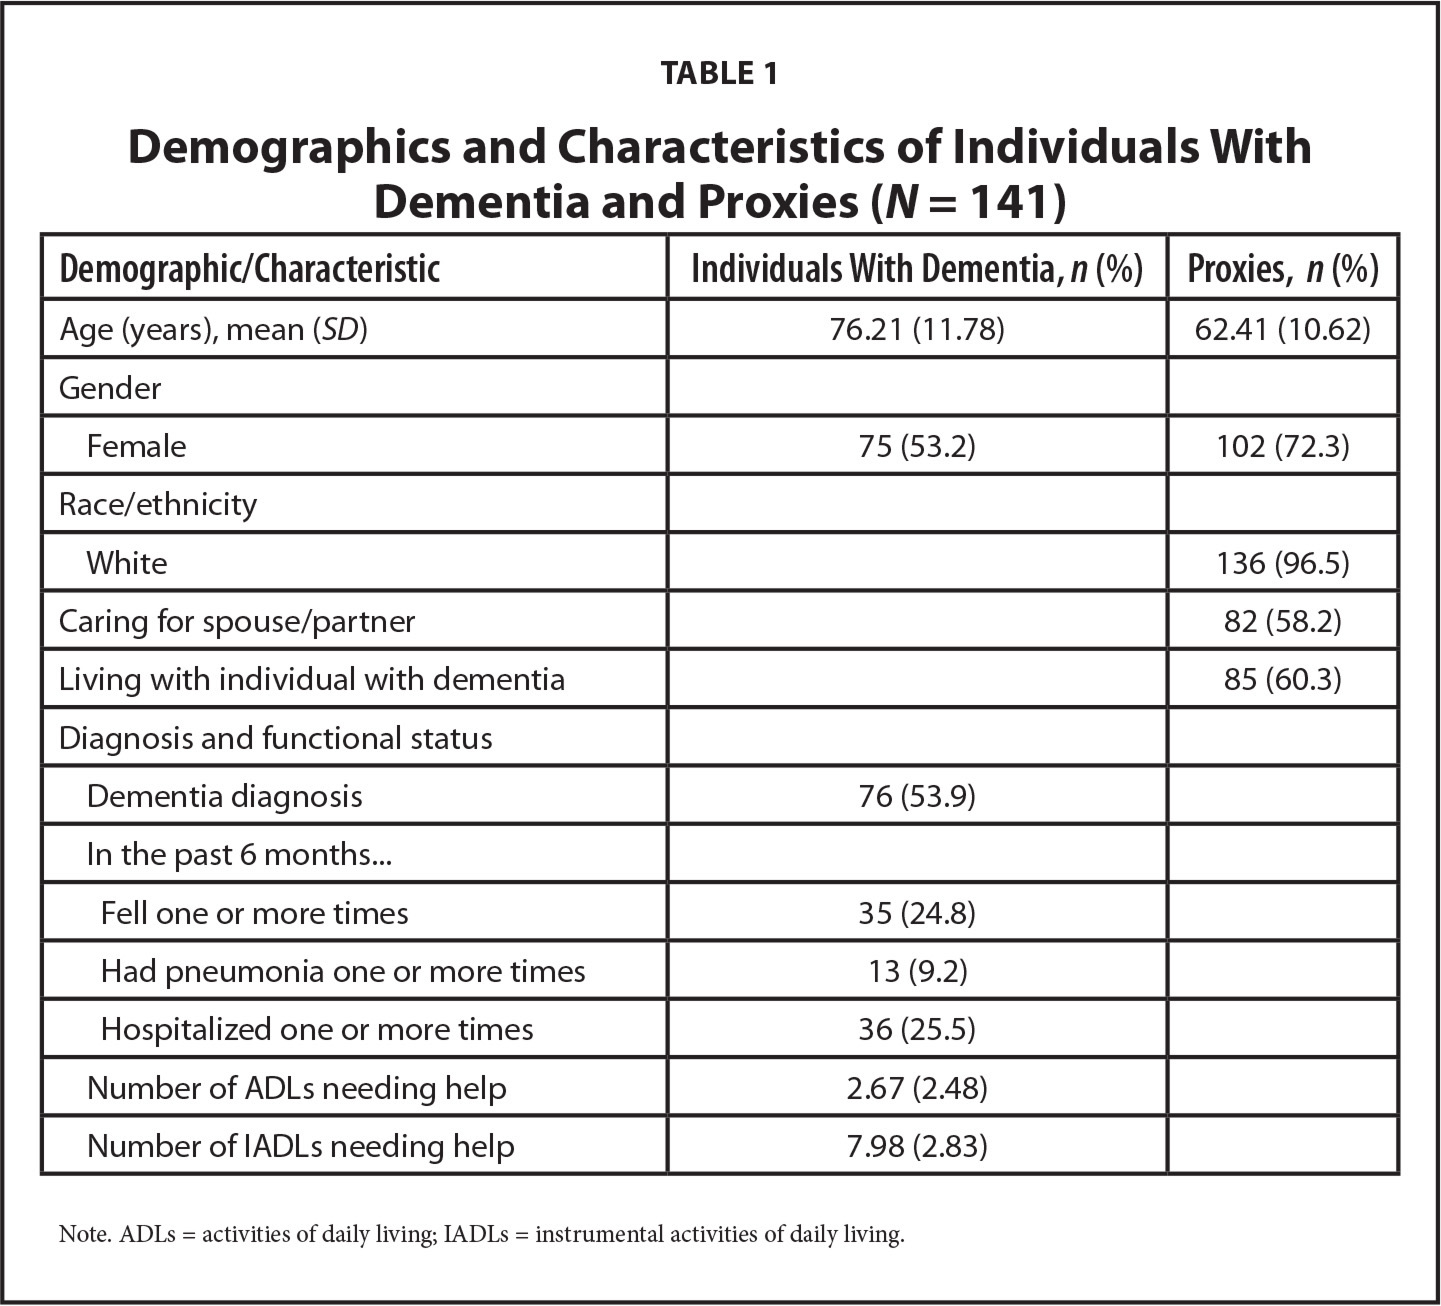 Demographics and Characteristics of Individuals With Dementia and Proxies (N = 141)